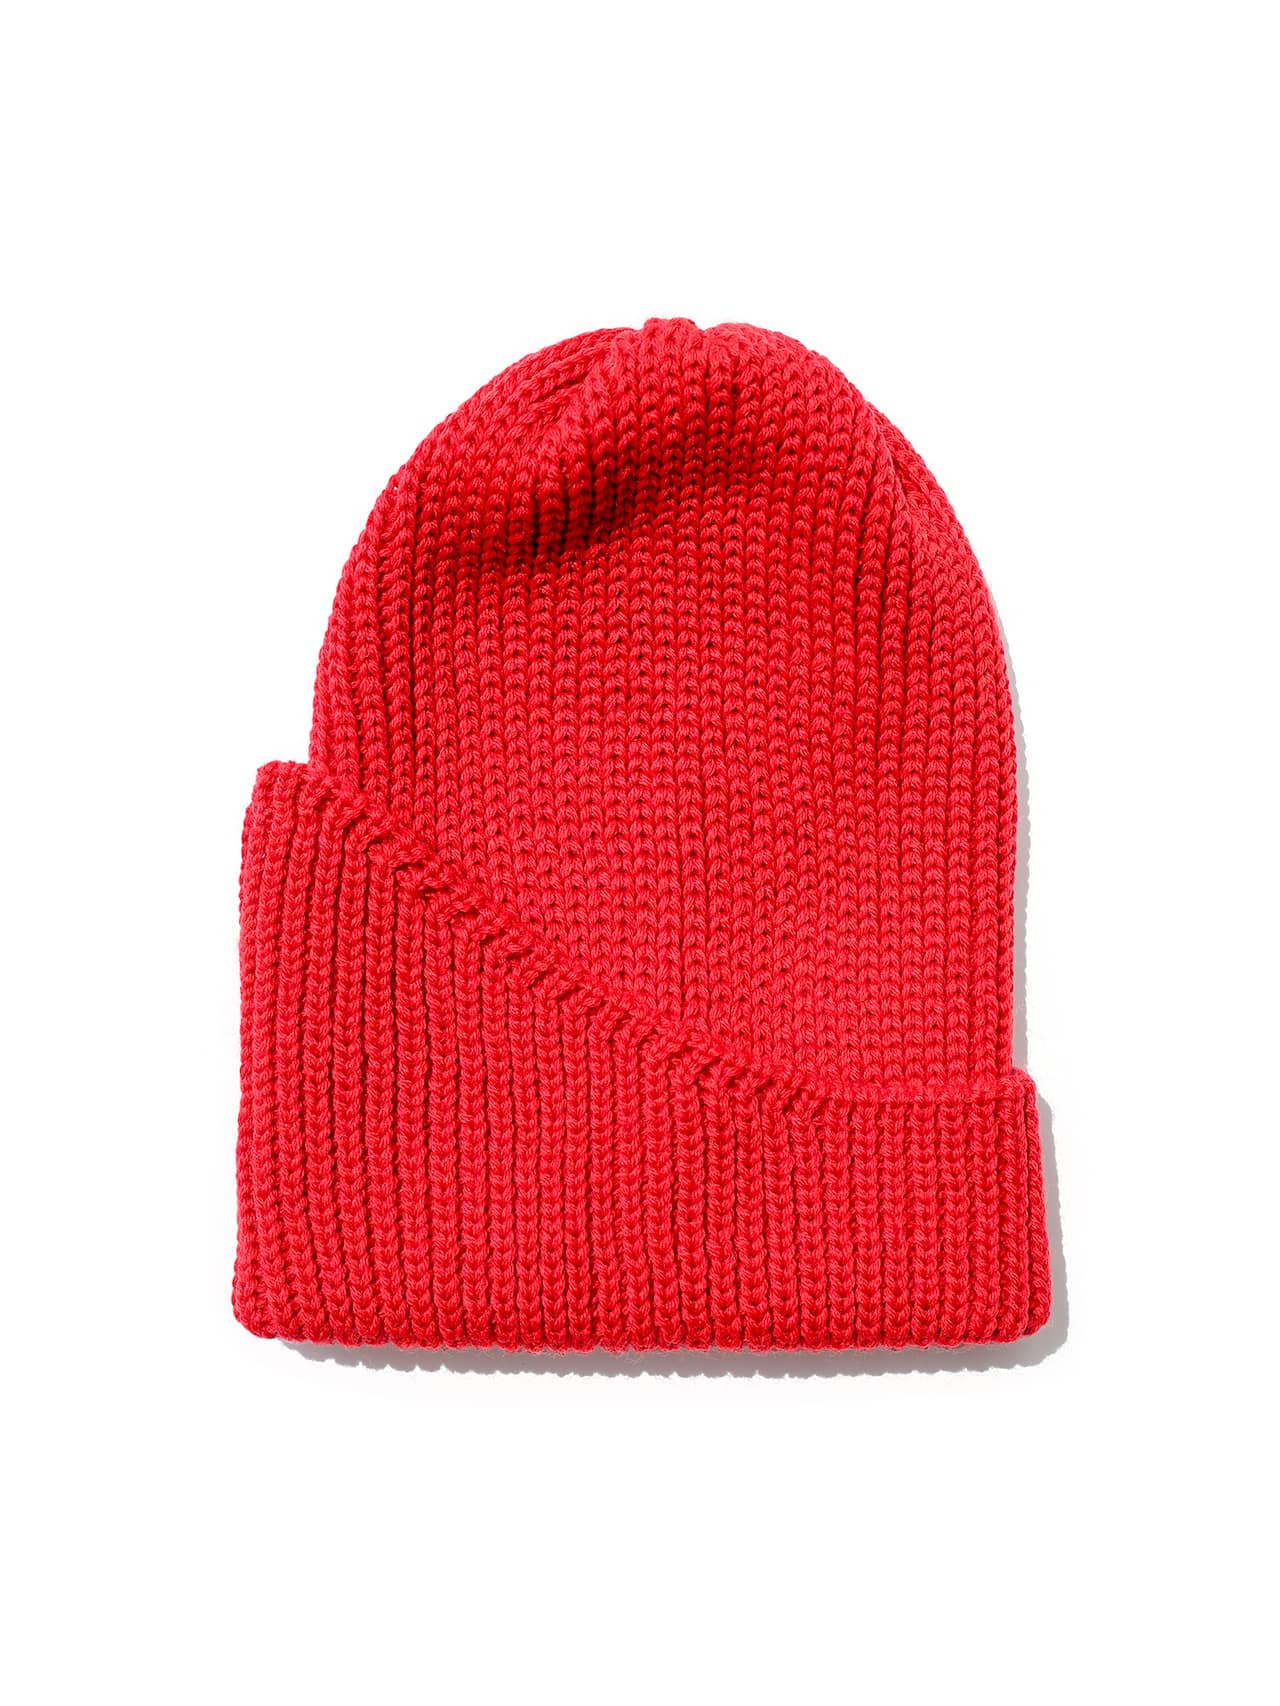 Reshaped Beanie merino - Red